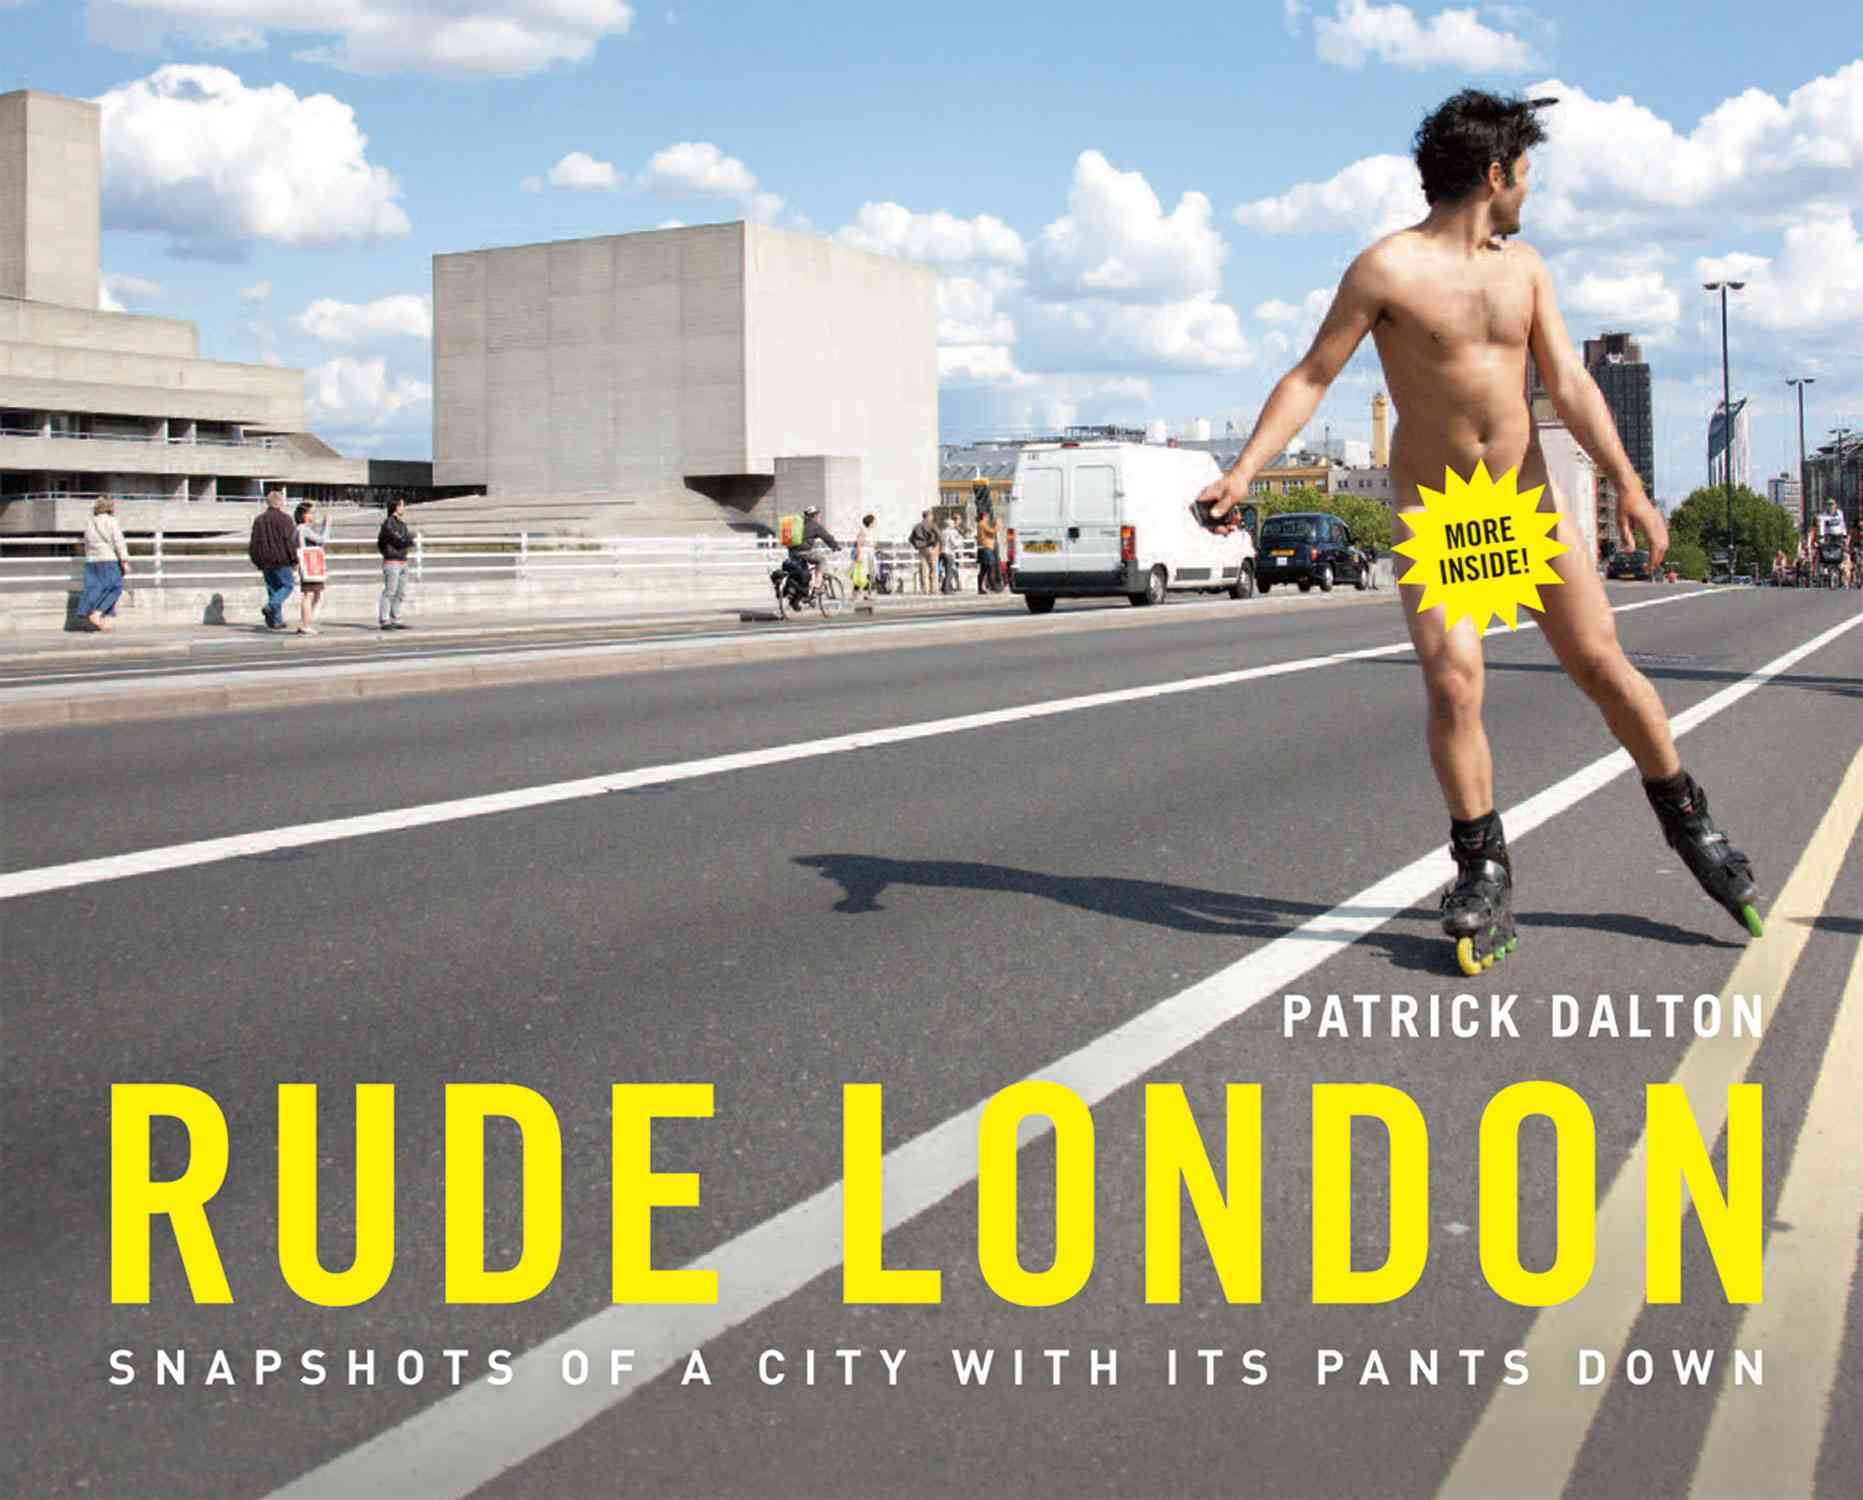 Rude London: Snapshots of a City With Its Pants Down (Hardcover)